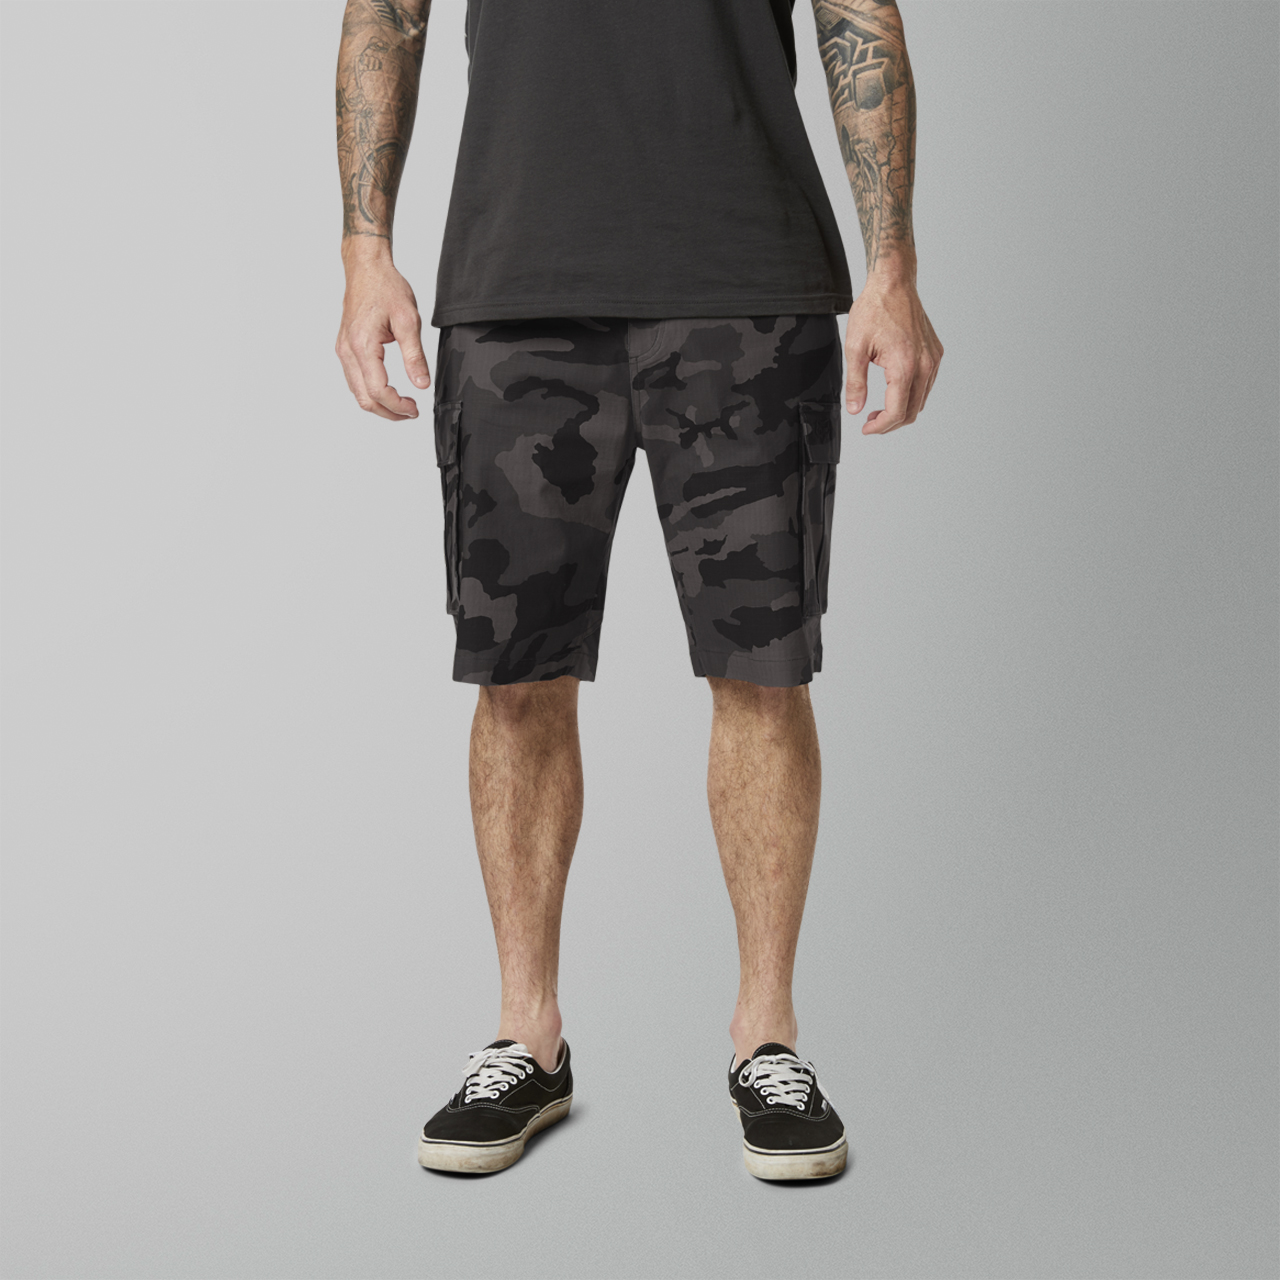 Shorts Fox Slambozo 2.0 Camo